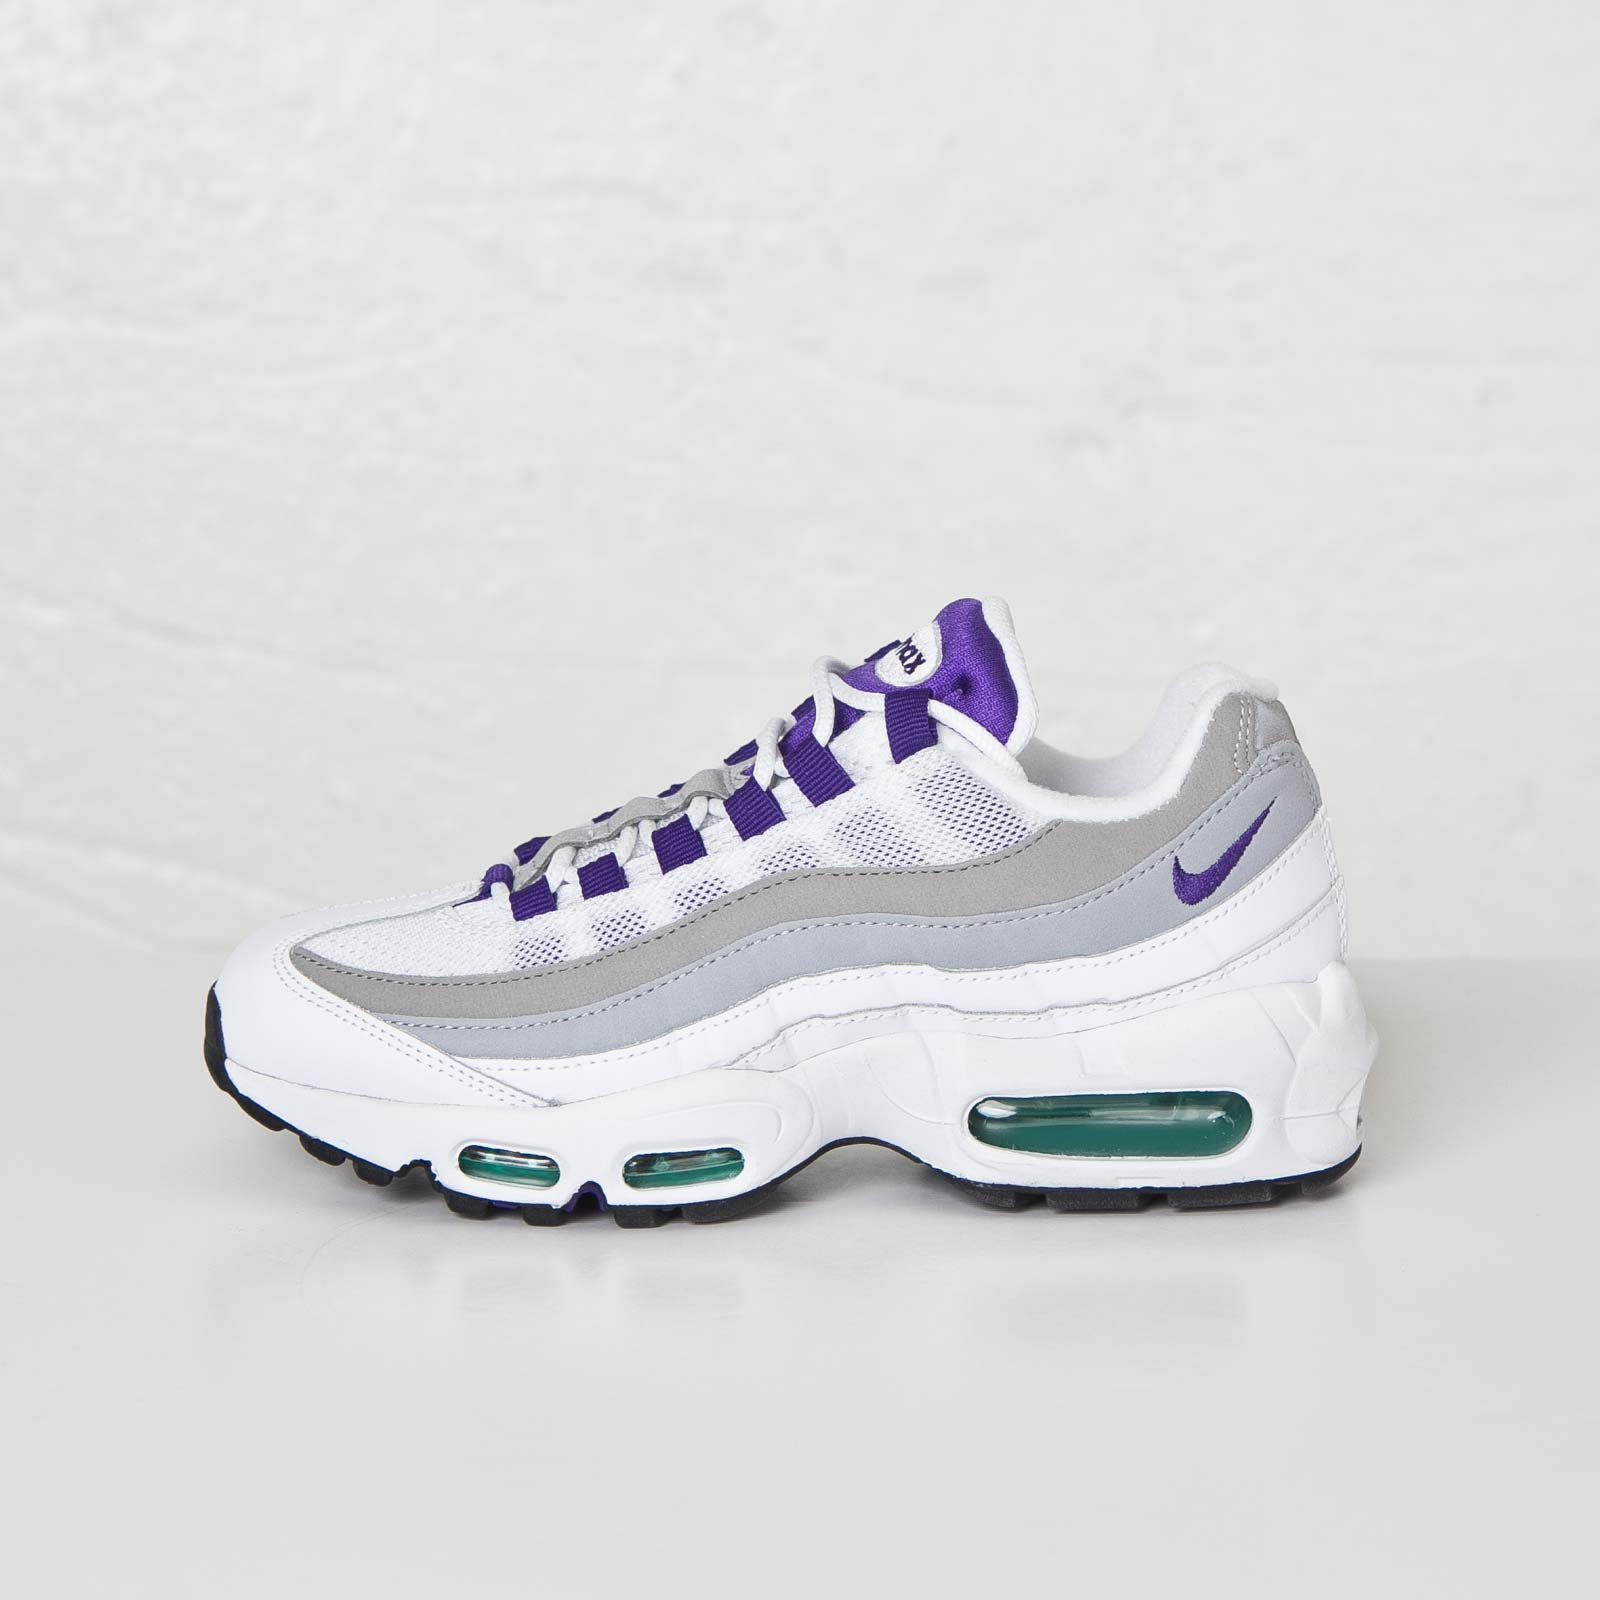 low priced 56f41 9bf09 ... Nike Wmns Air Max 95 ...